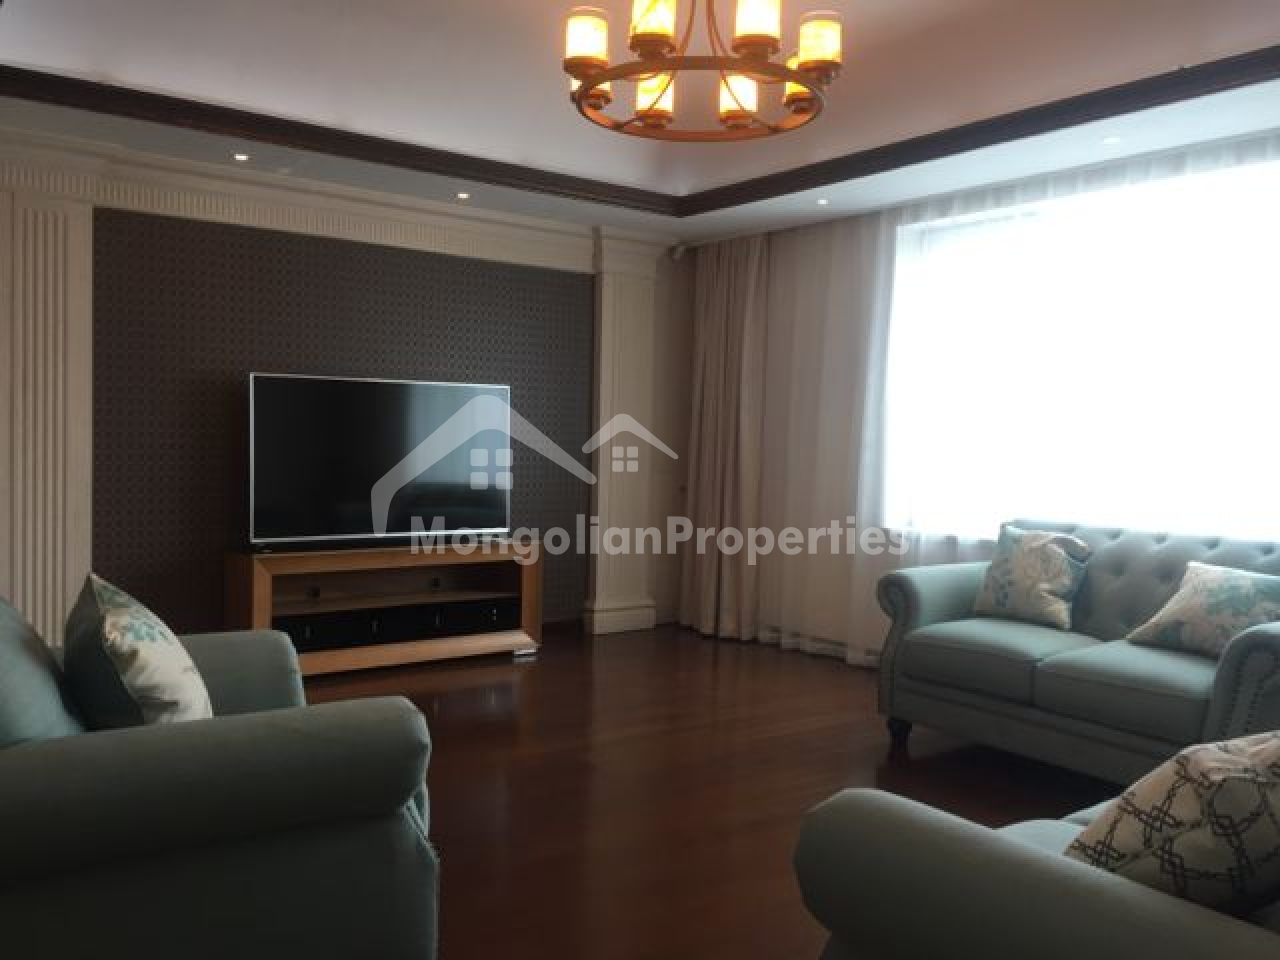 Furniture Village Investment fresh air, beautiful, spacious 2 bedroom apartment is for rent in